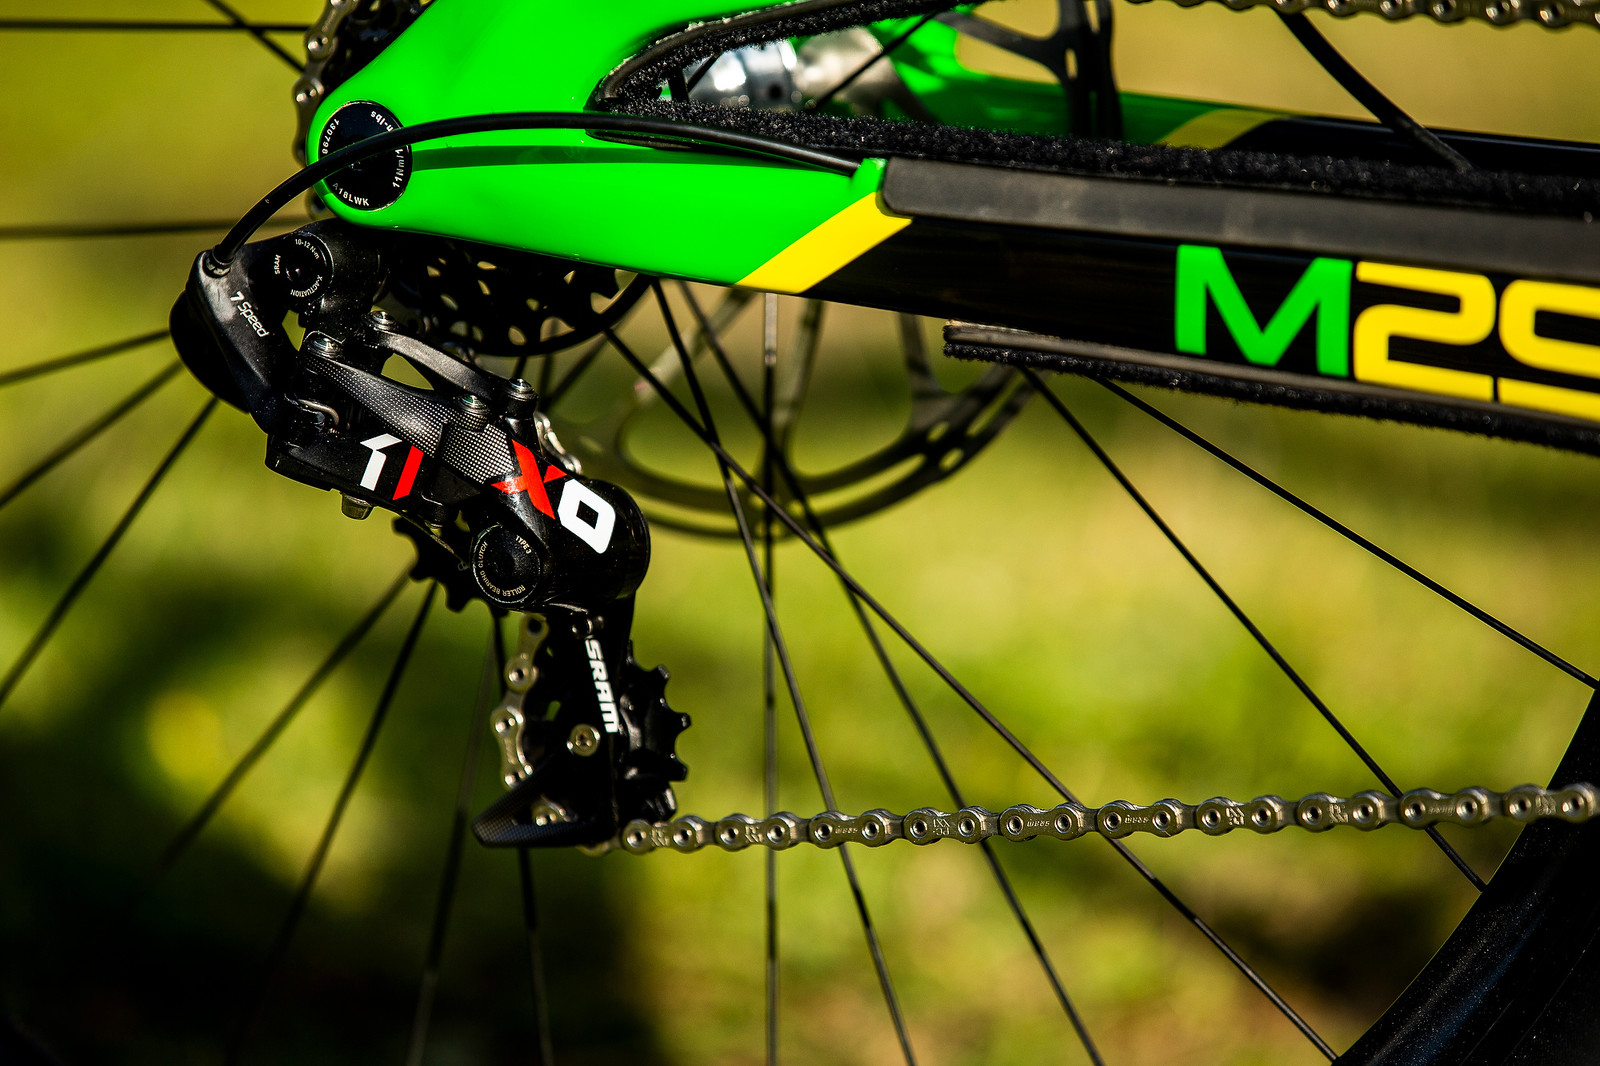 SRAM Shifting - WORLD CHAMPS BIKE - Jack Moir's Intense M29 - Mountain Biking Pictures - Vital MTB